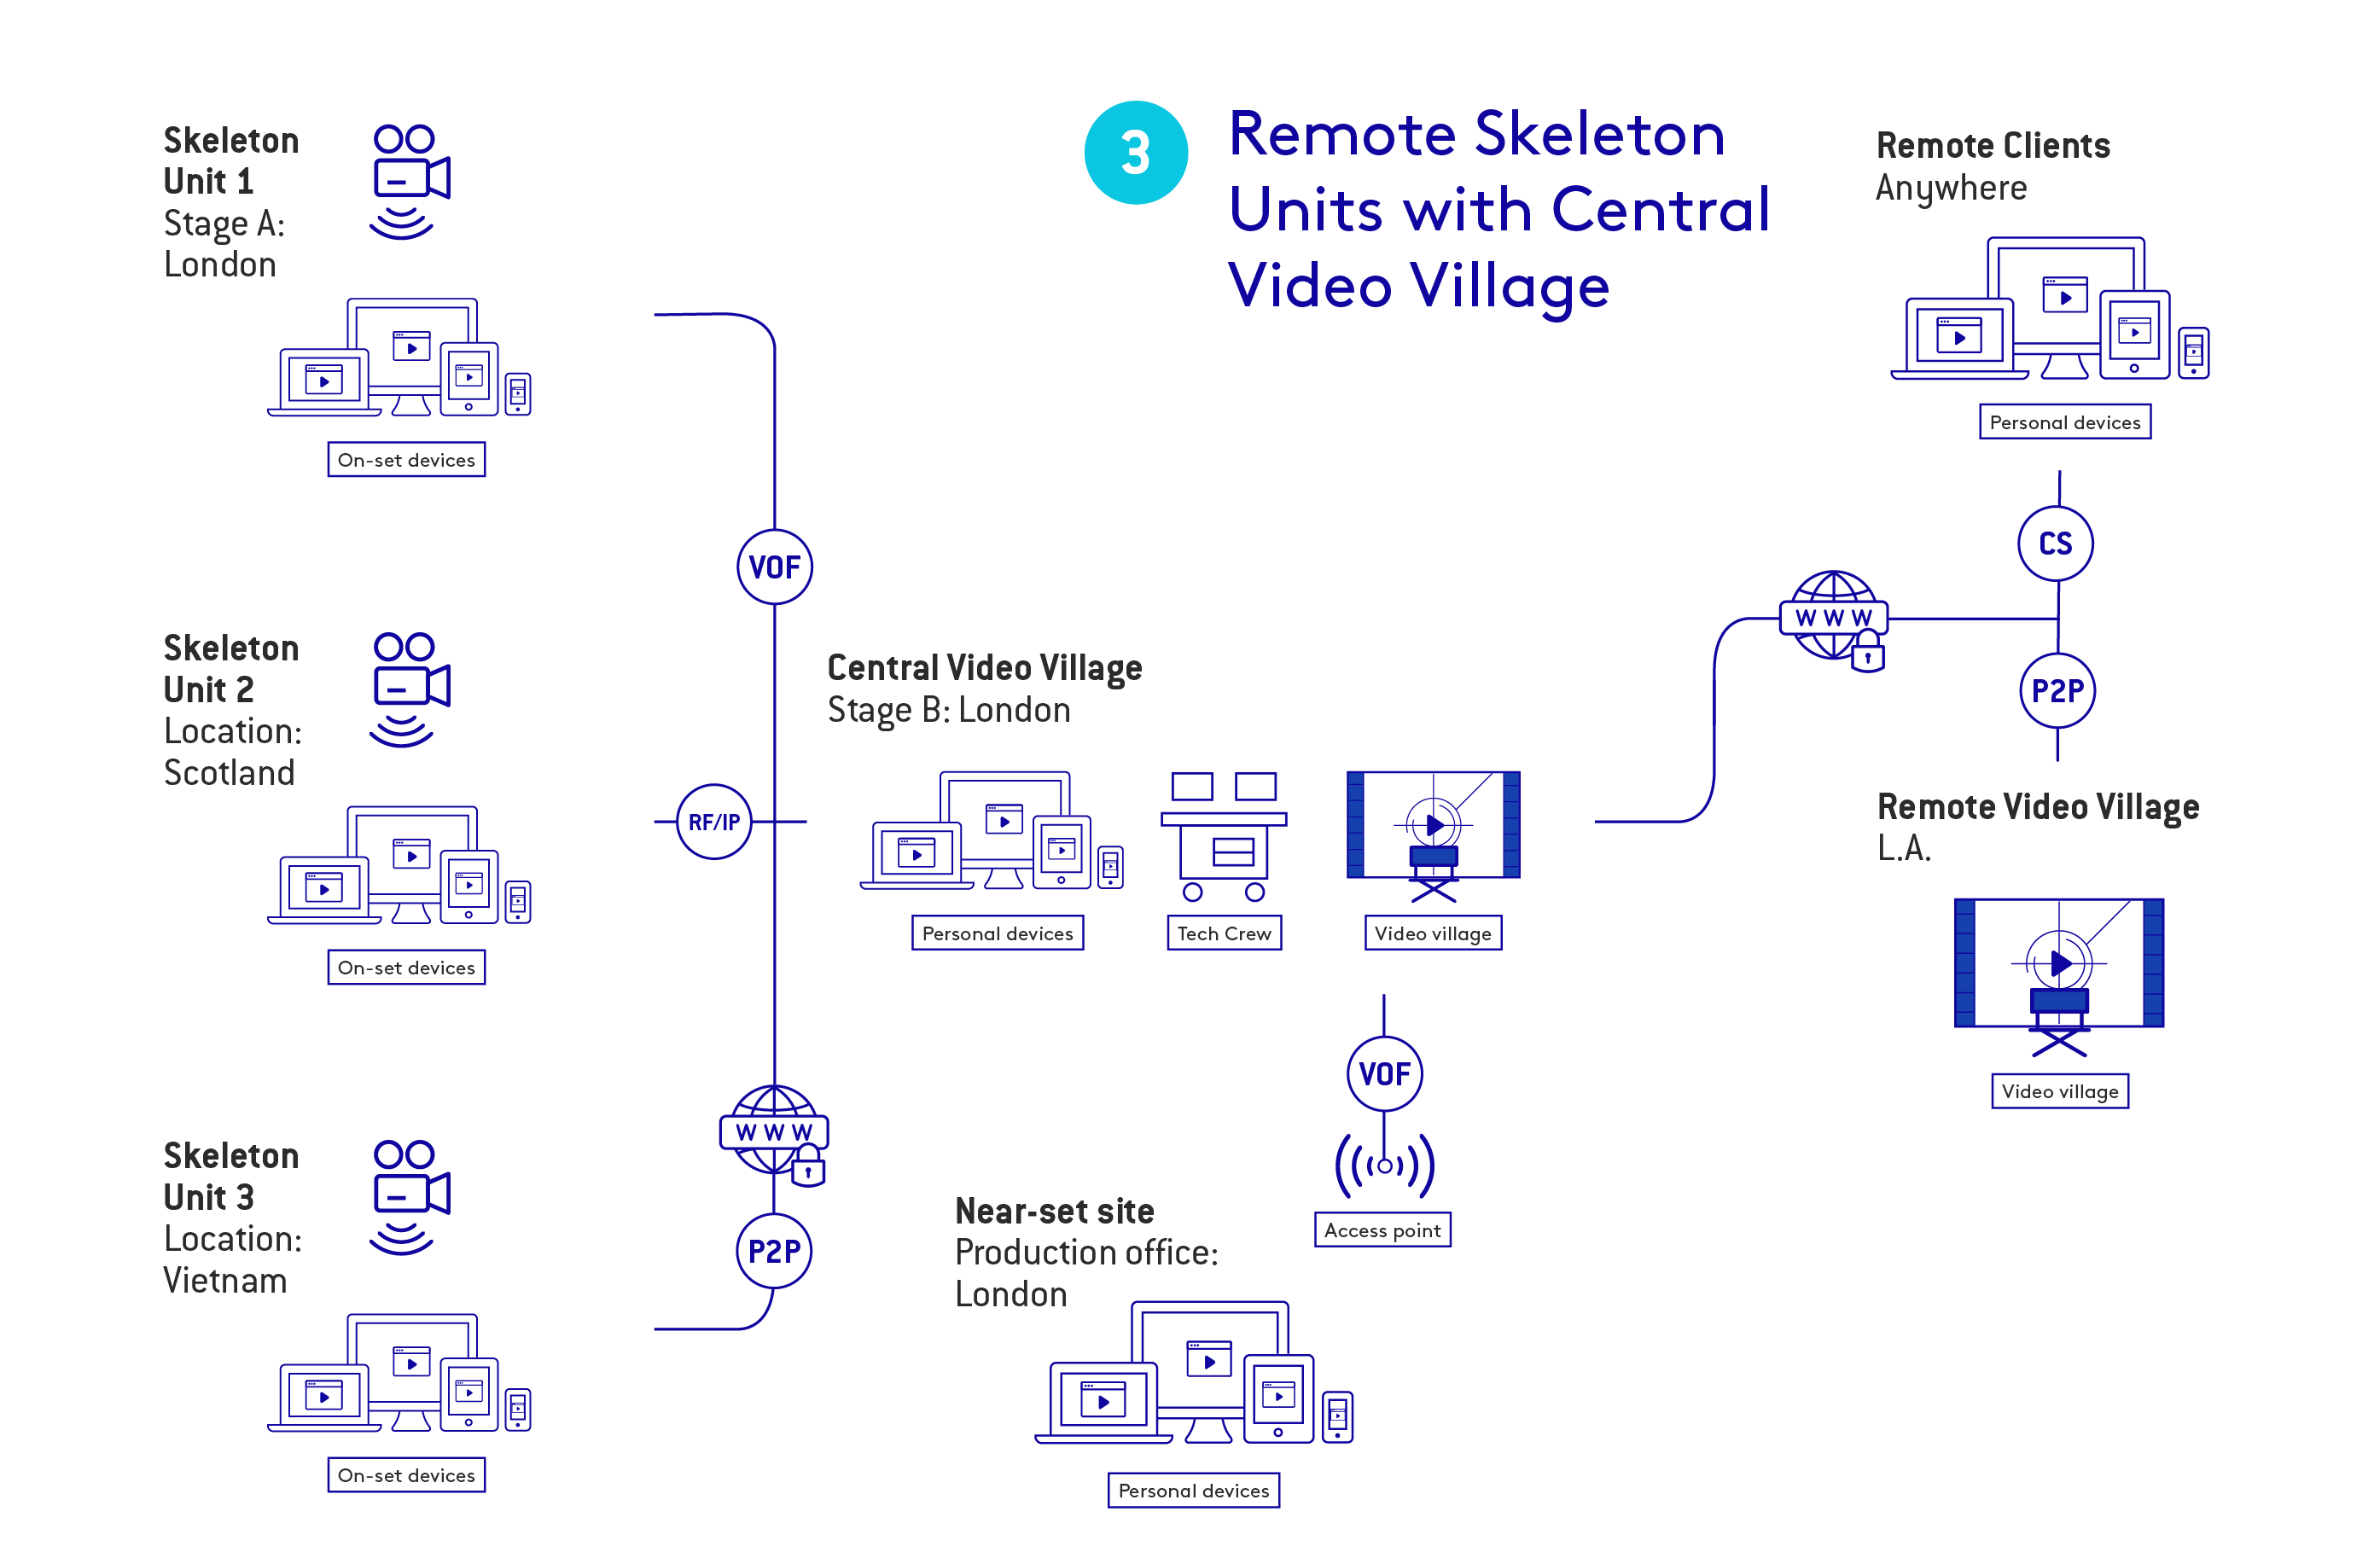 ArkLink Remote Skeleton unites with central video village